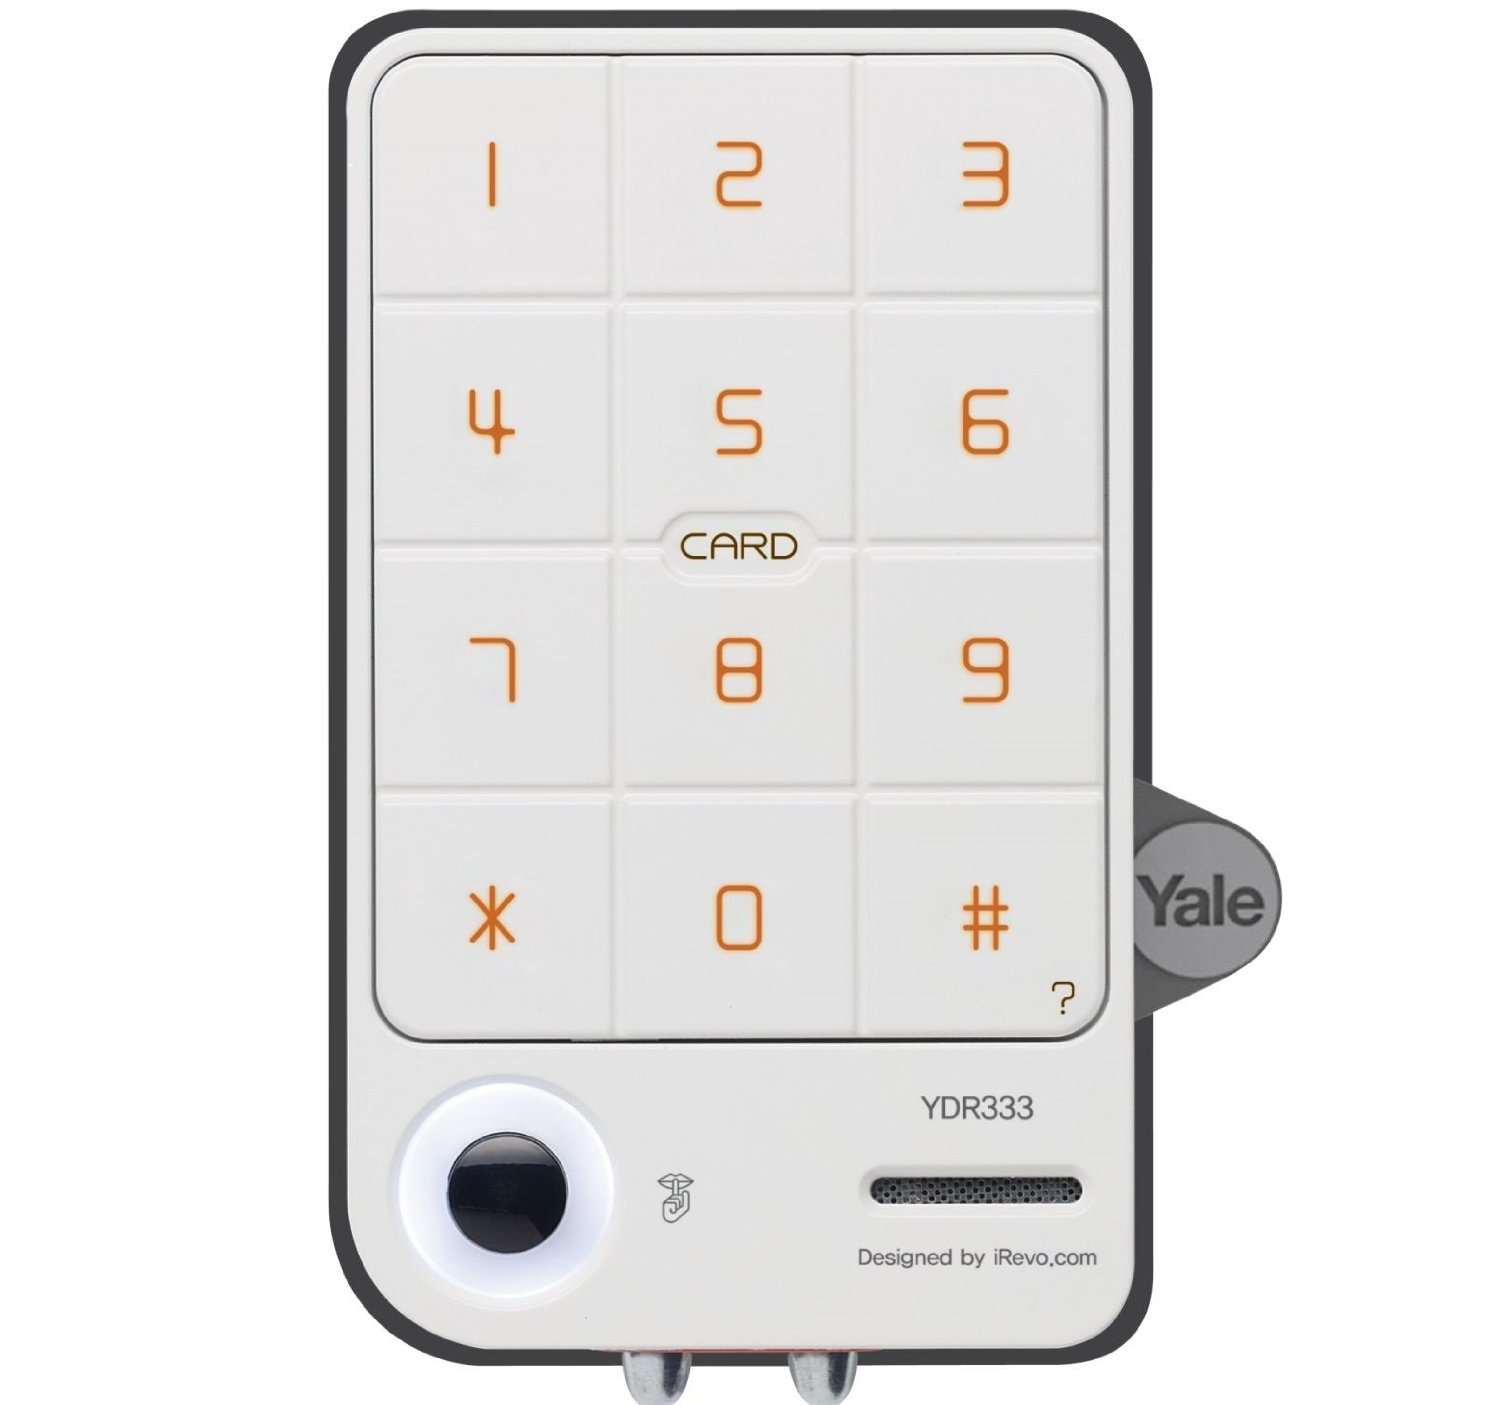 yearend should card can original actually promotion you is the doors that rfid door or home one unlock to lock decor how easy locks fingerprint both digital i yale use furnishings replace